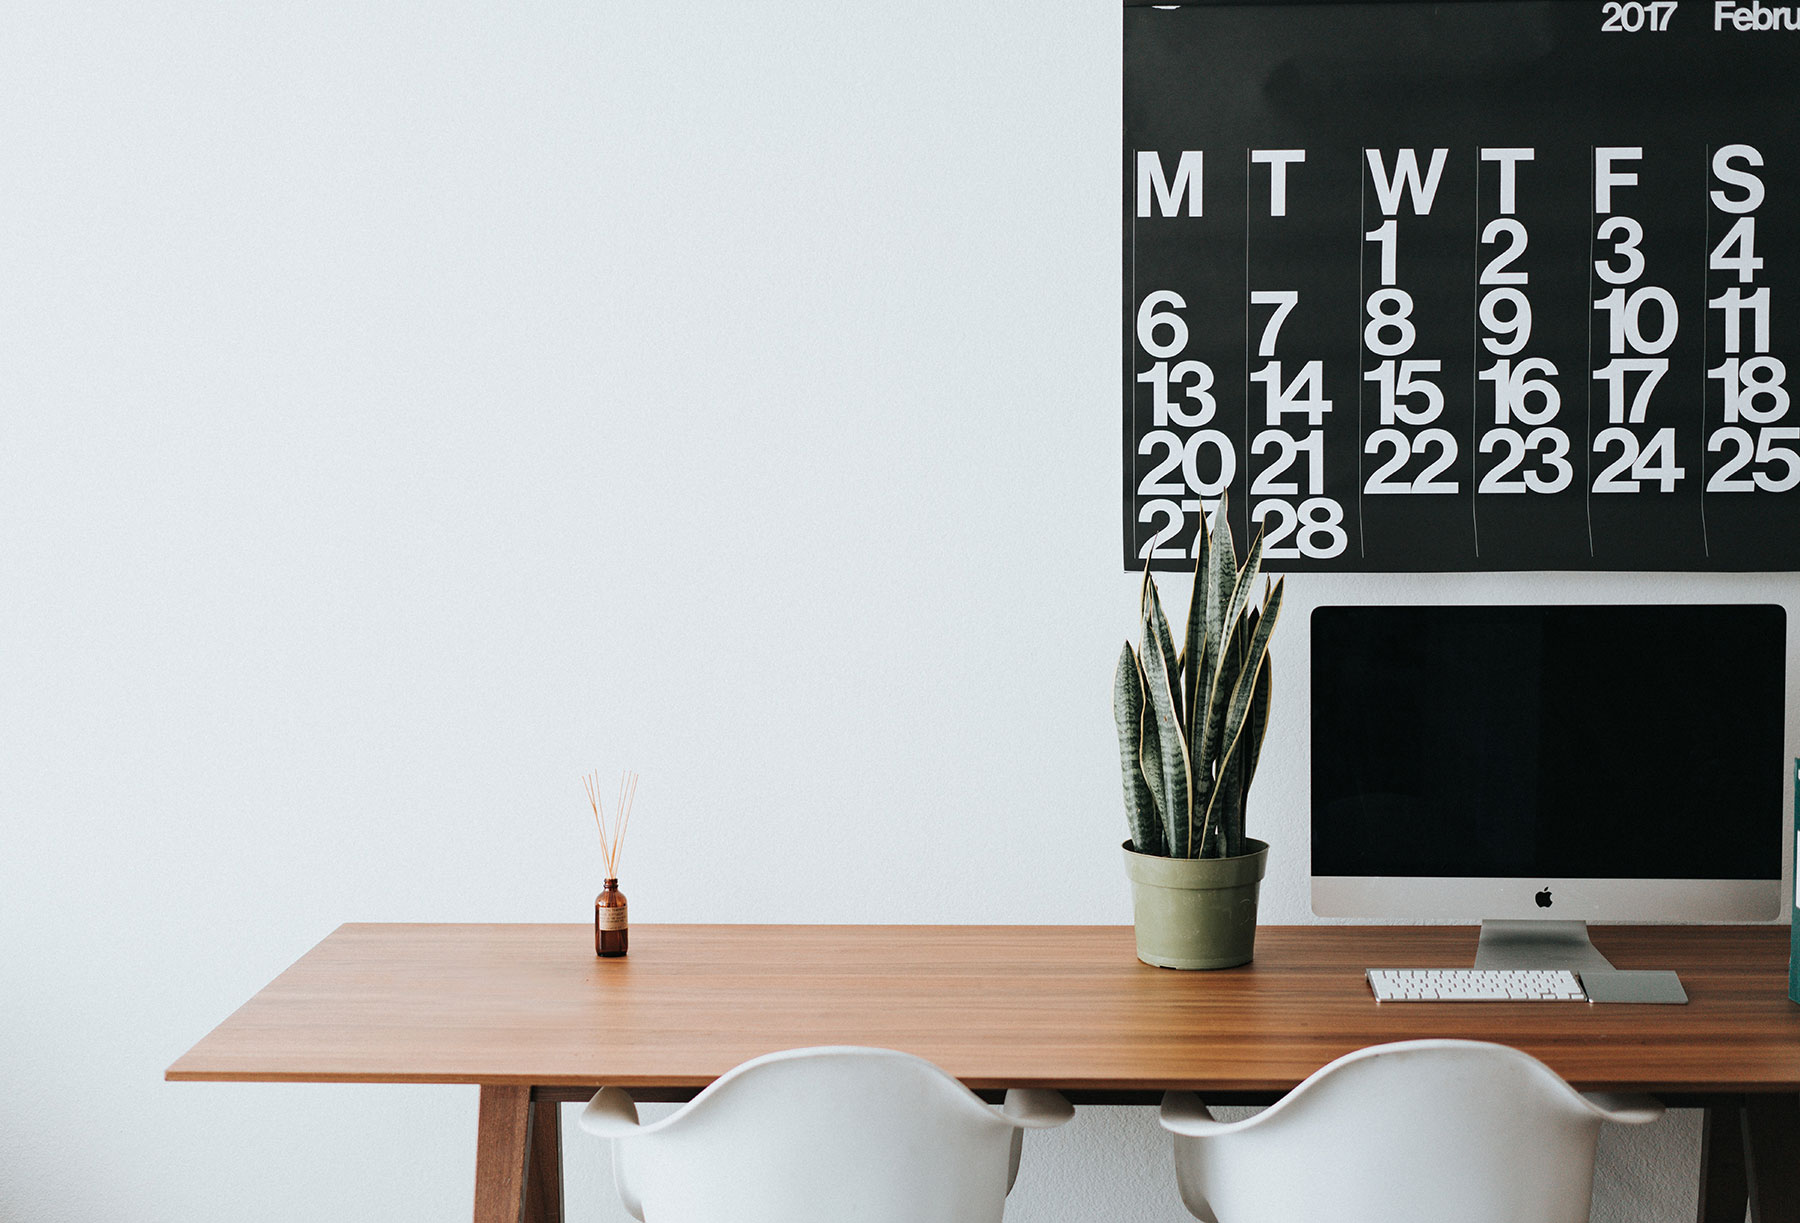 Hybrid workplace management: Consider office weeks as well as office days